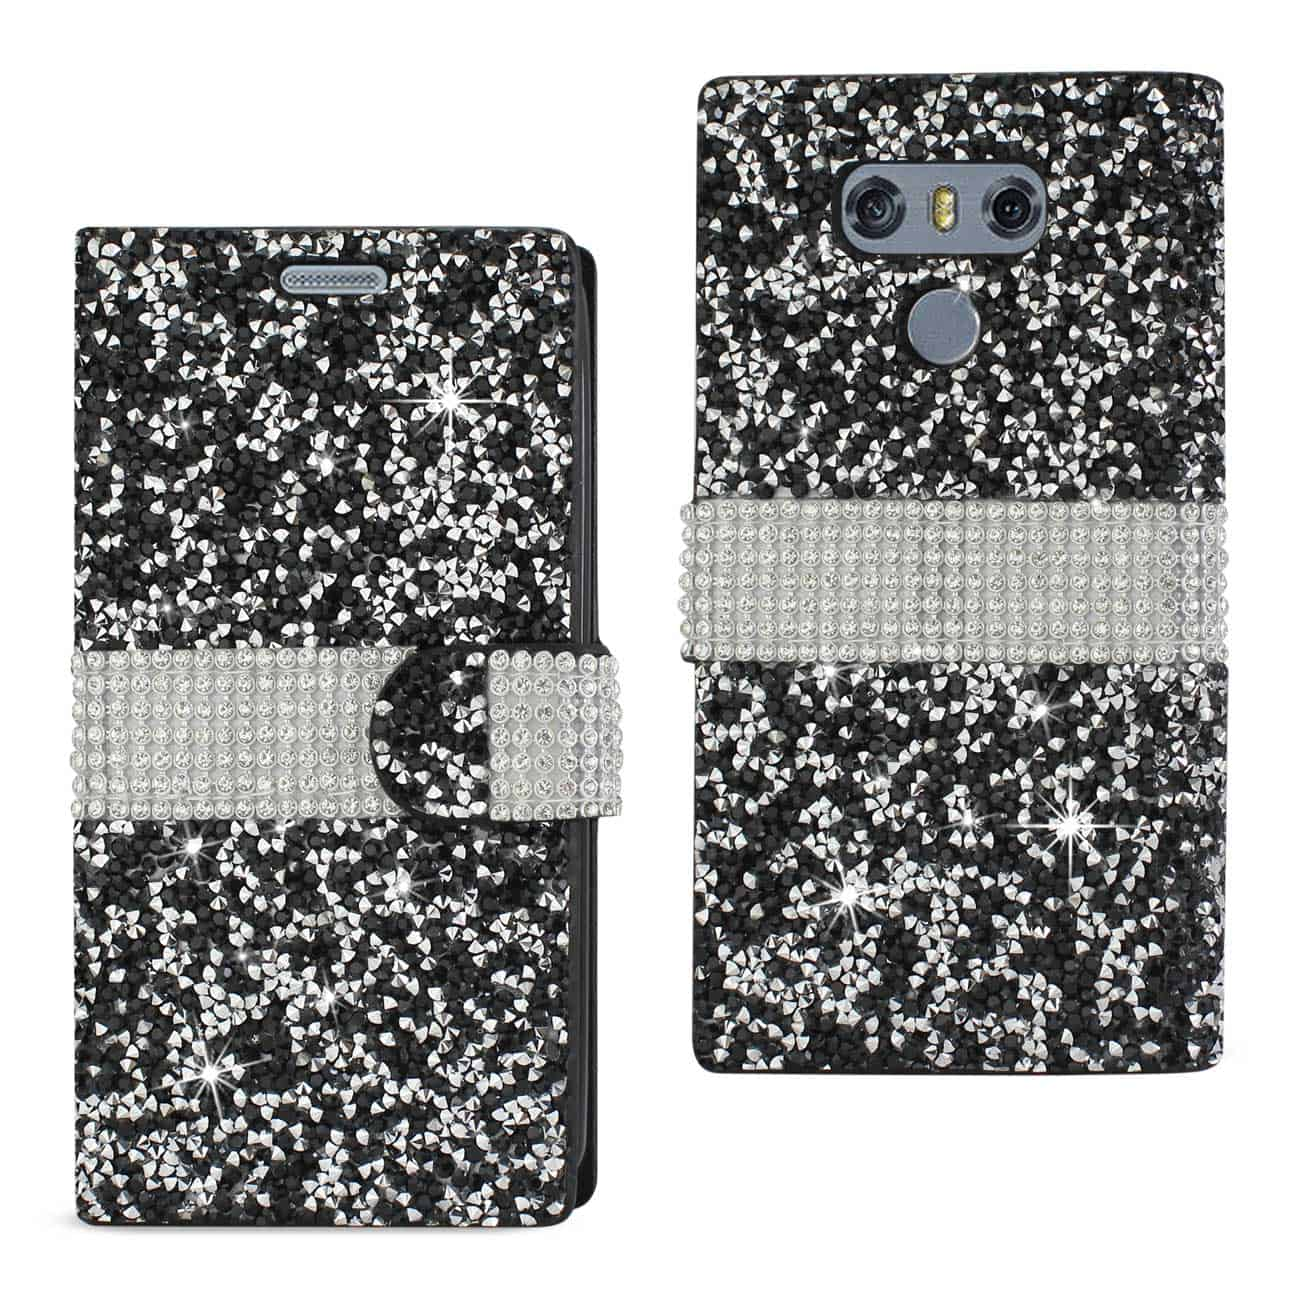 LG G6 DIAMOND RHINESTONE WALLET CASE IN BLACK